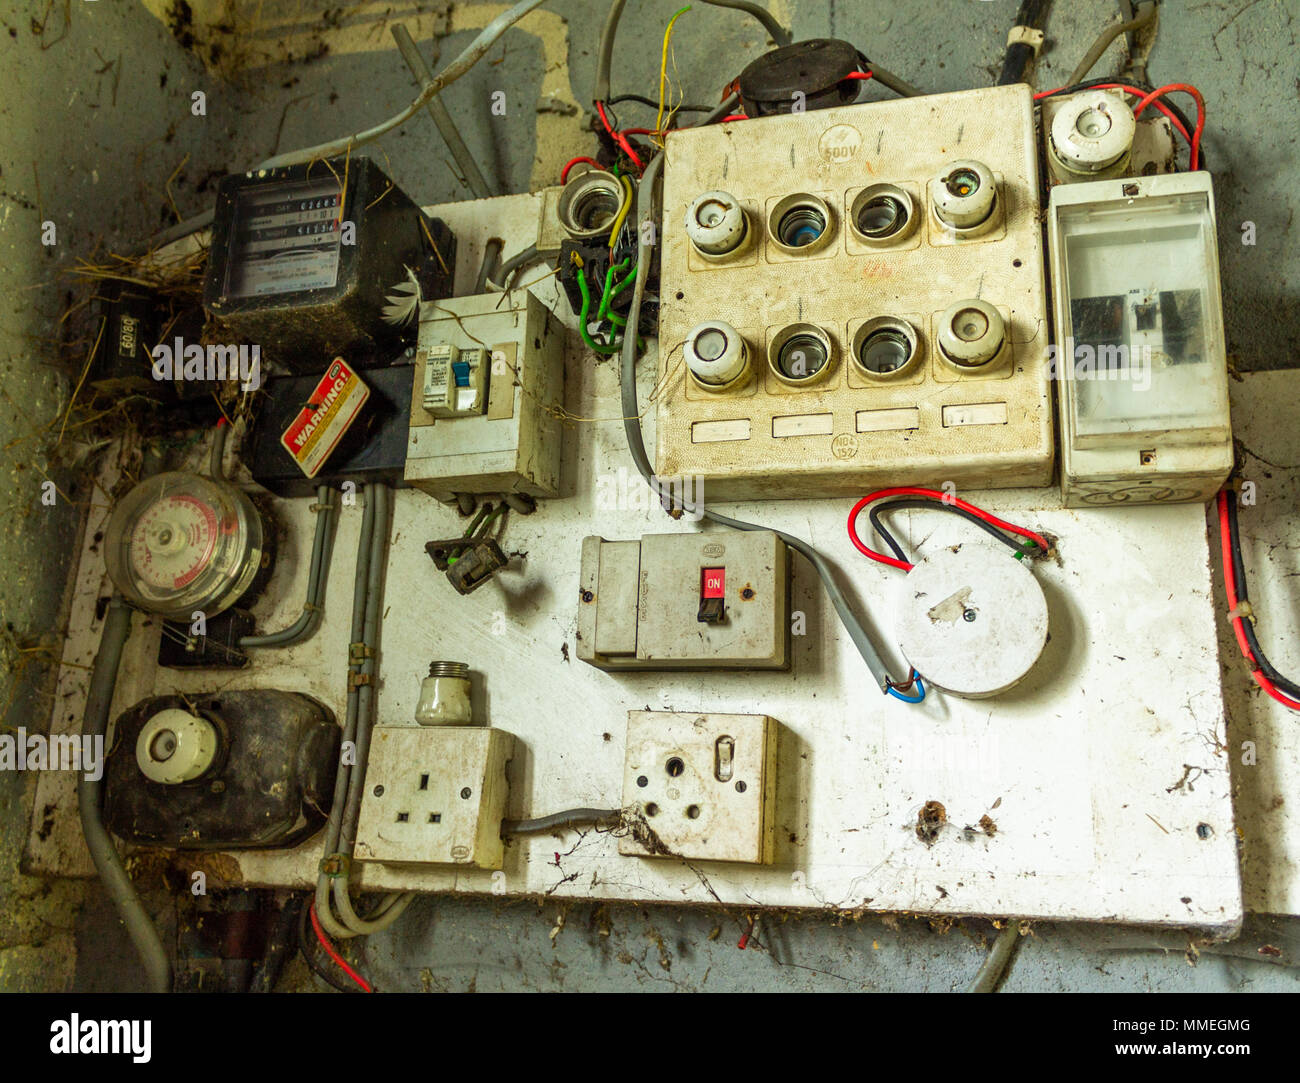 old electrical distribution board with electric meter fuse box fuse board and electric switches with the wiring attached MMEGMG electrical distribution board stock photos & electrical distribution